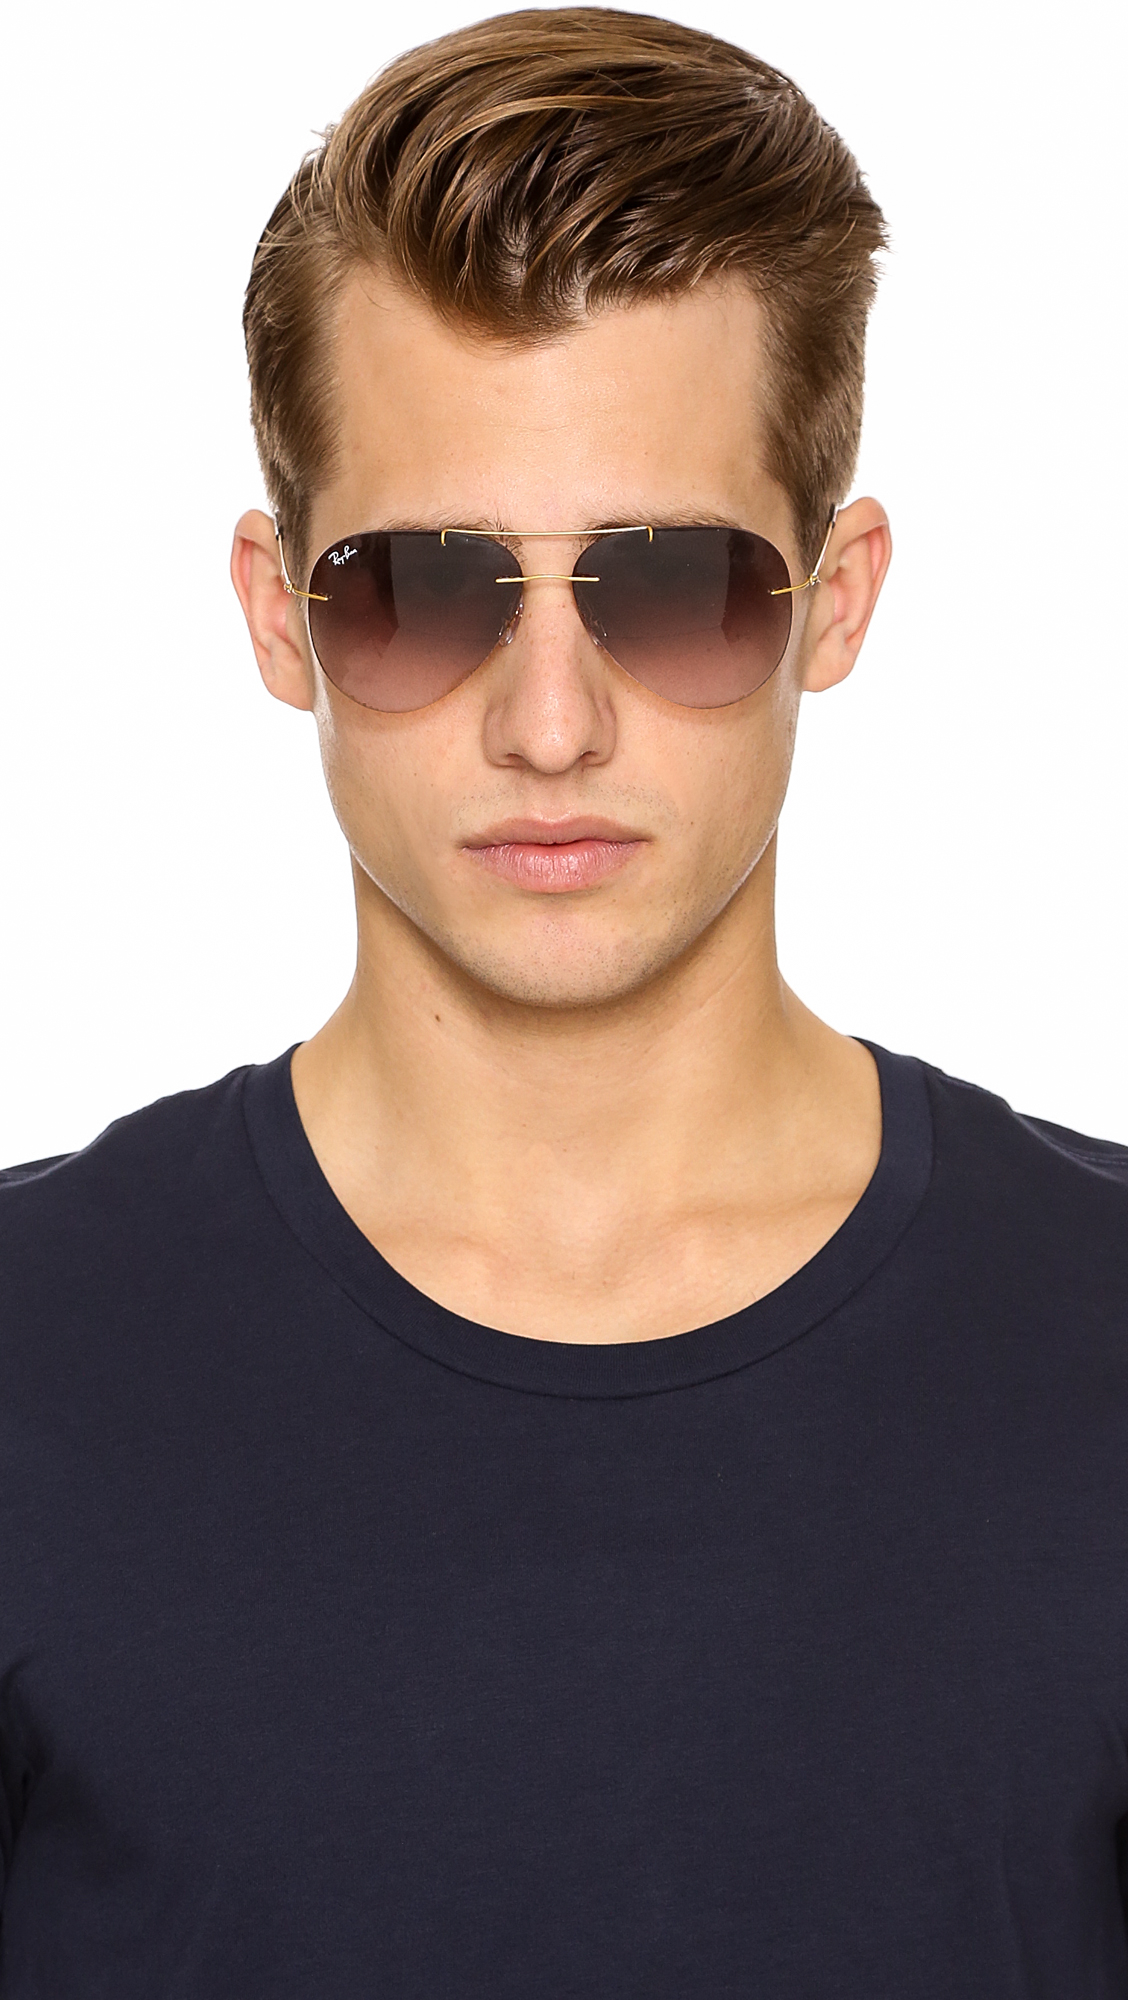 men aviator sunglasses  Ray-ban Light Tech Aviator Sunglasses in Metallic for Men